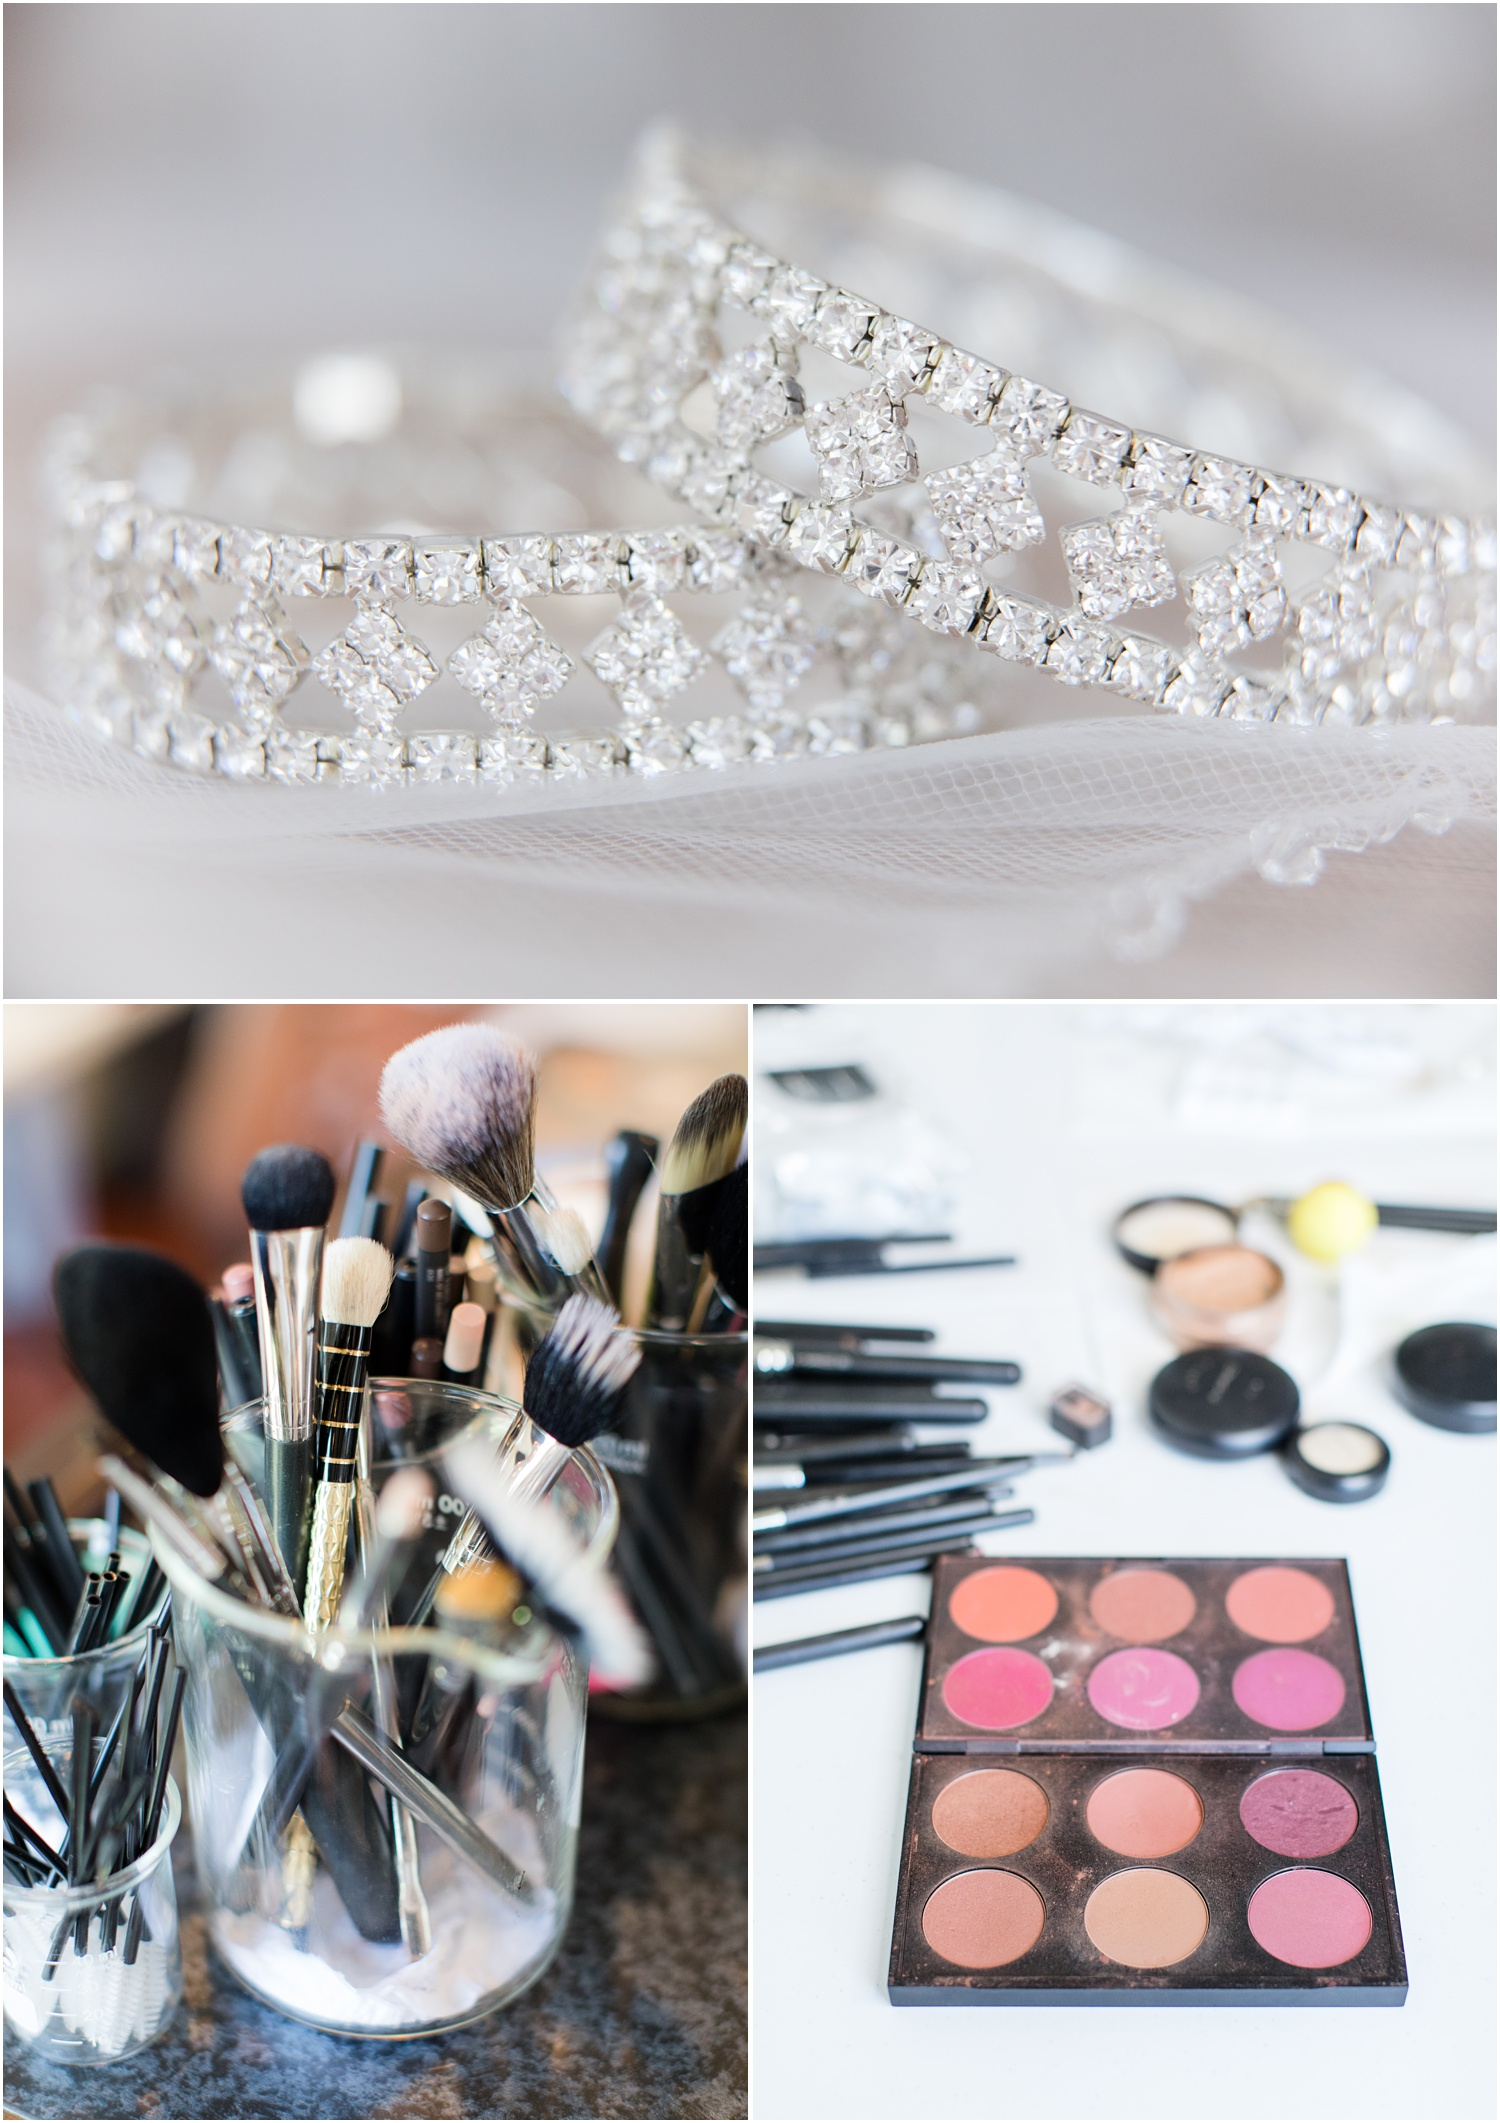 Wedding day jewelry and makeup